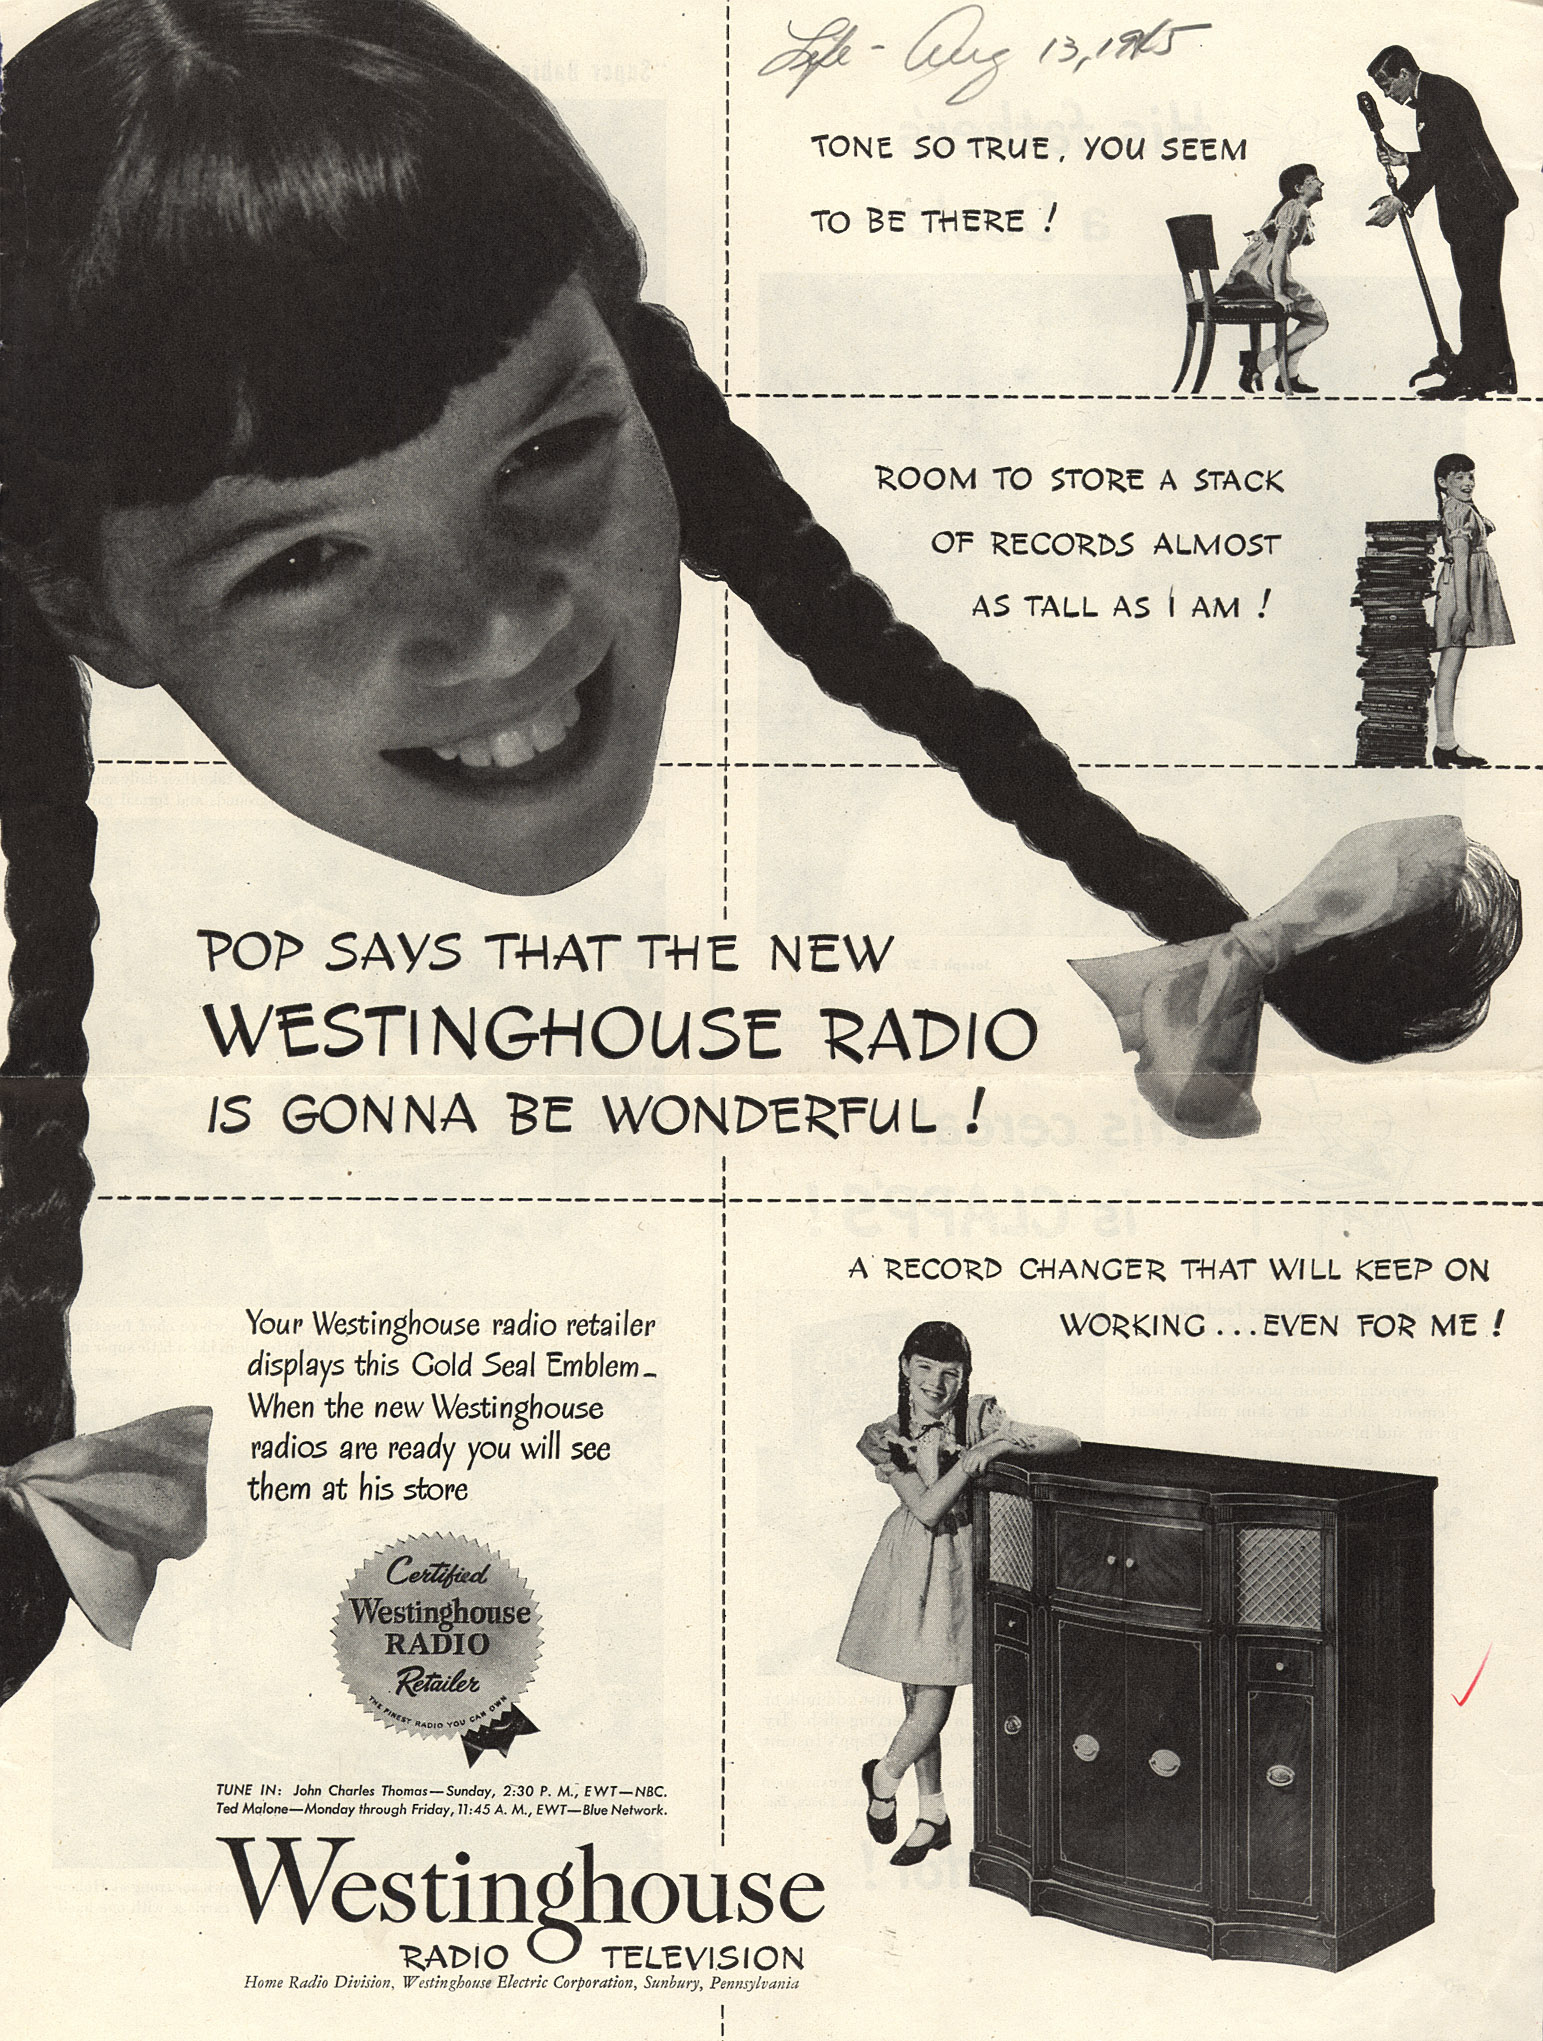 Pop_says_that_the_new_Westinghouse_Radio_is_gonna_be_wonderful